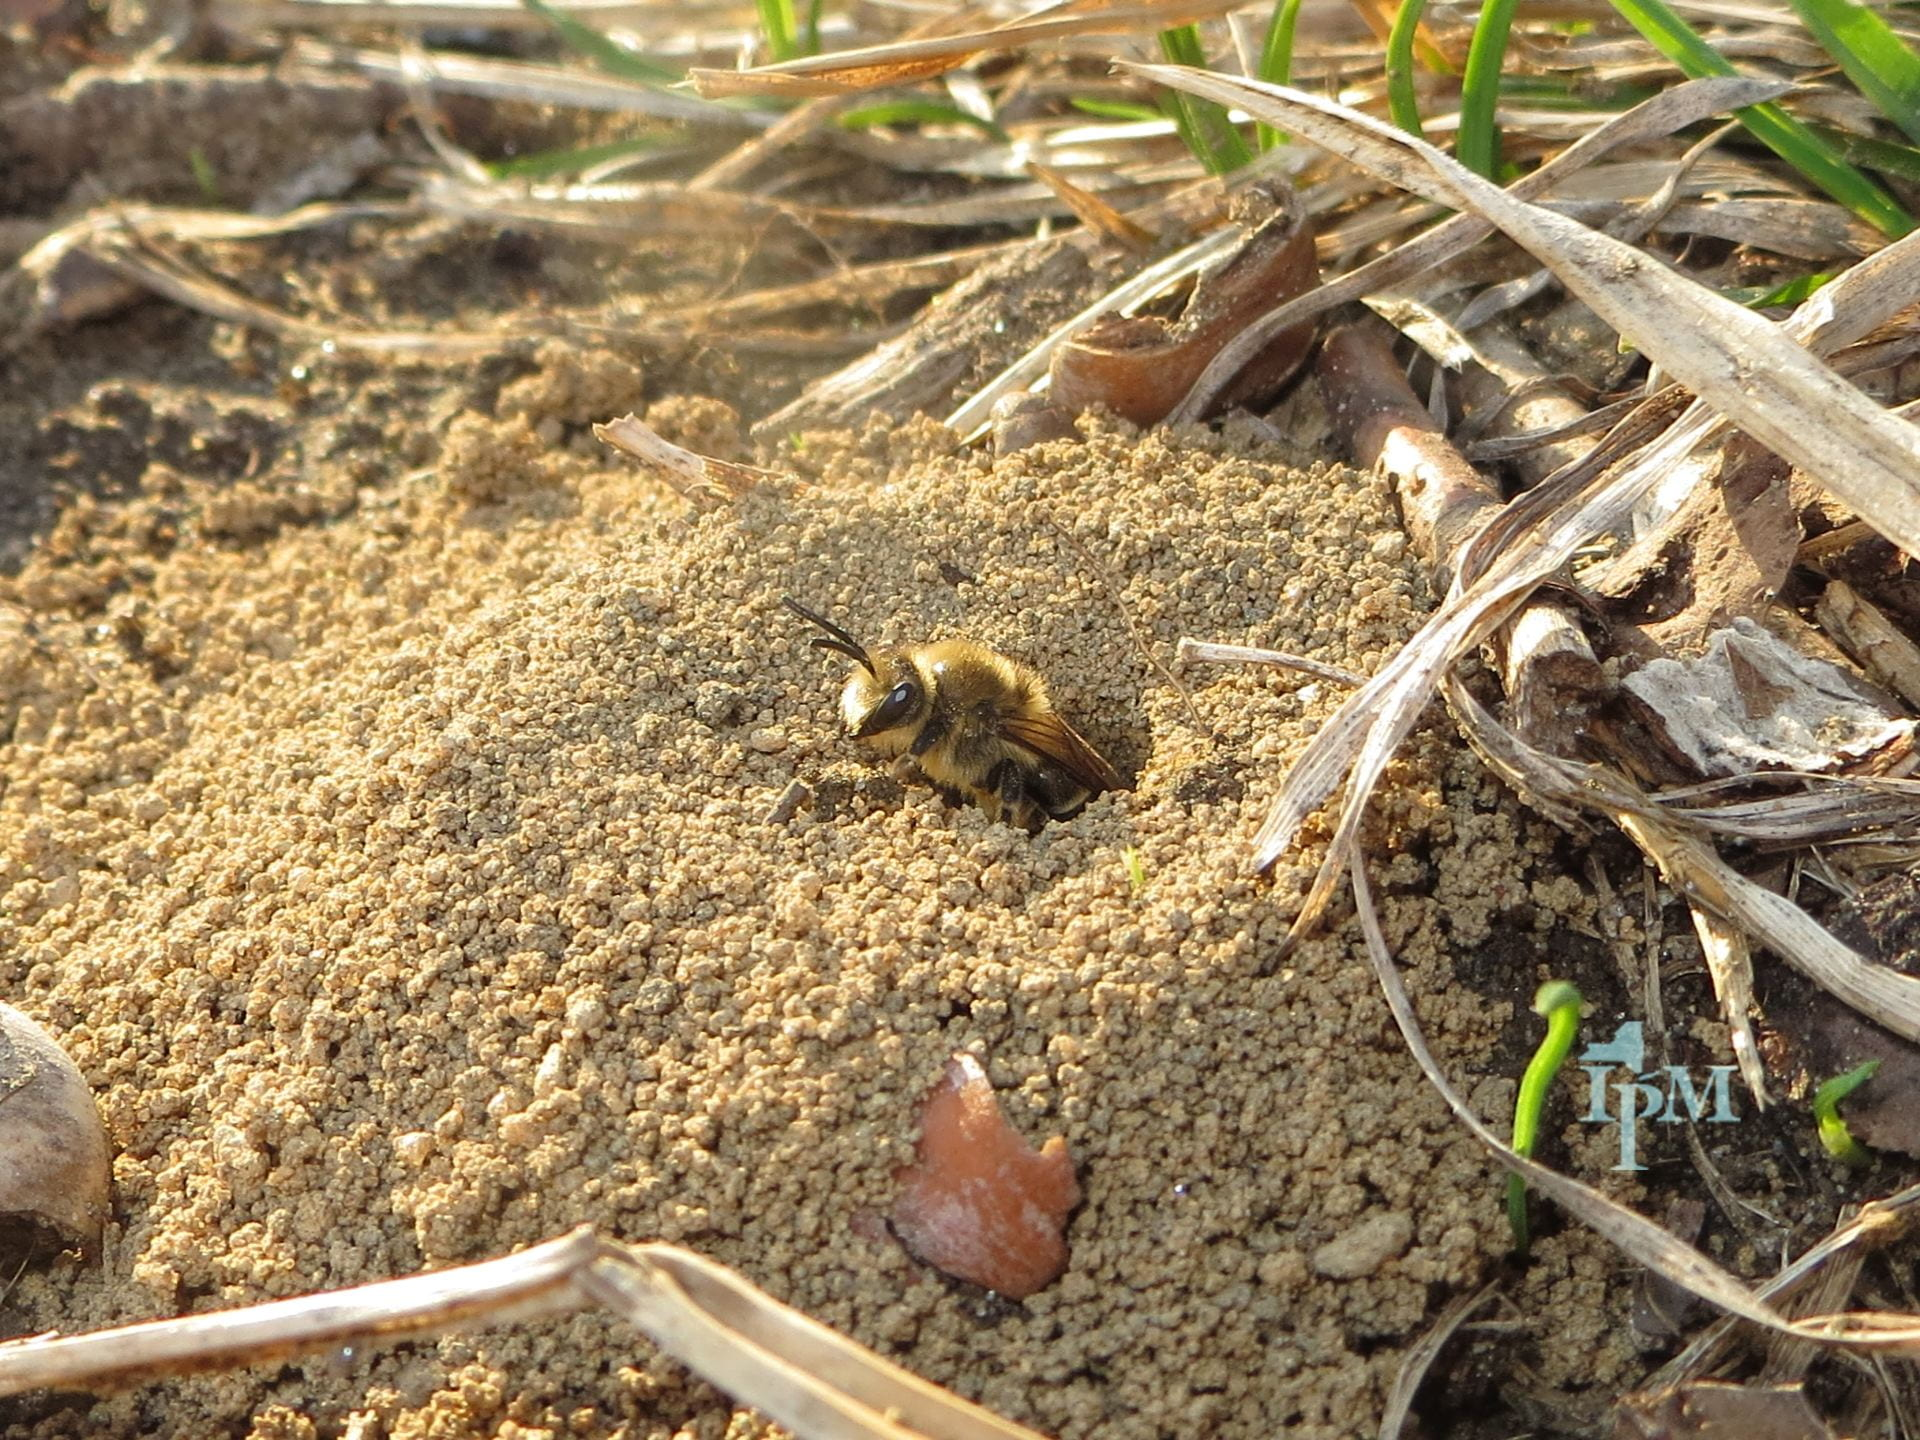 photo of cellophane bee exiting a ground nest